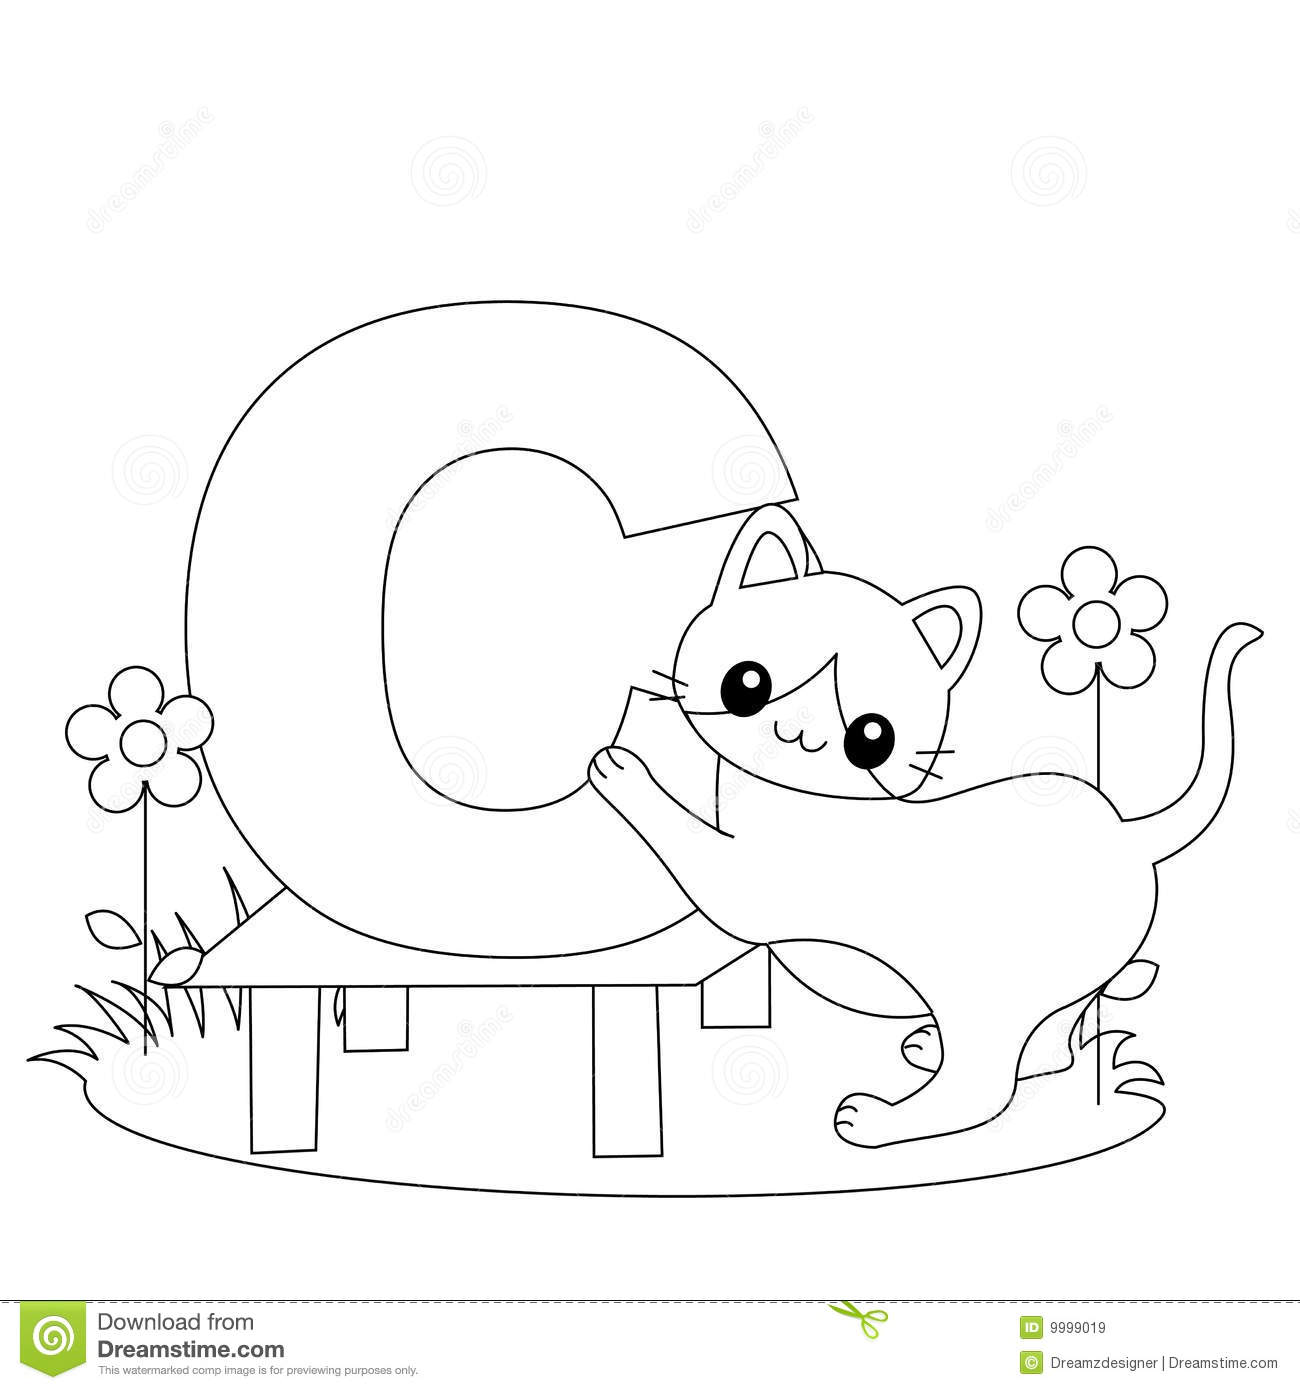 Coloring Pages Animals Letters : Animal alphabet c coloring page stock vector image